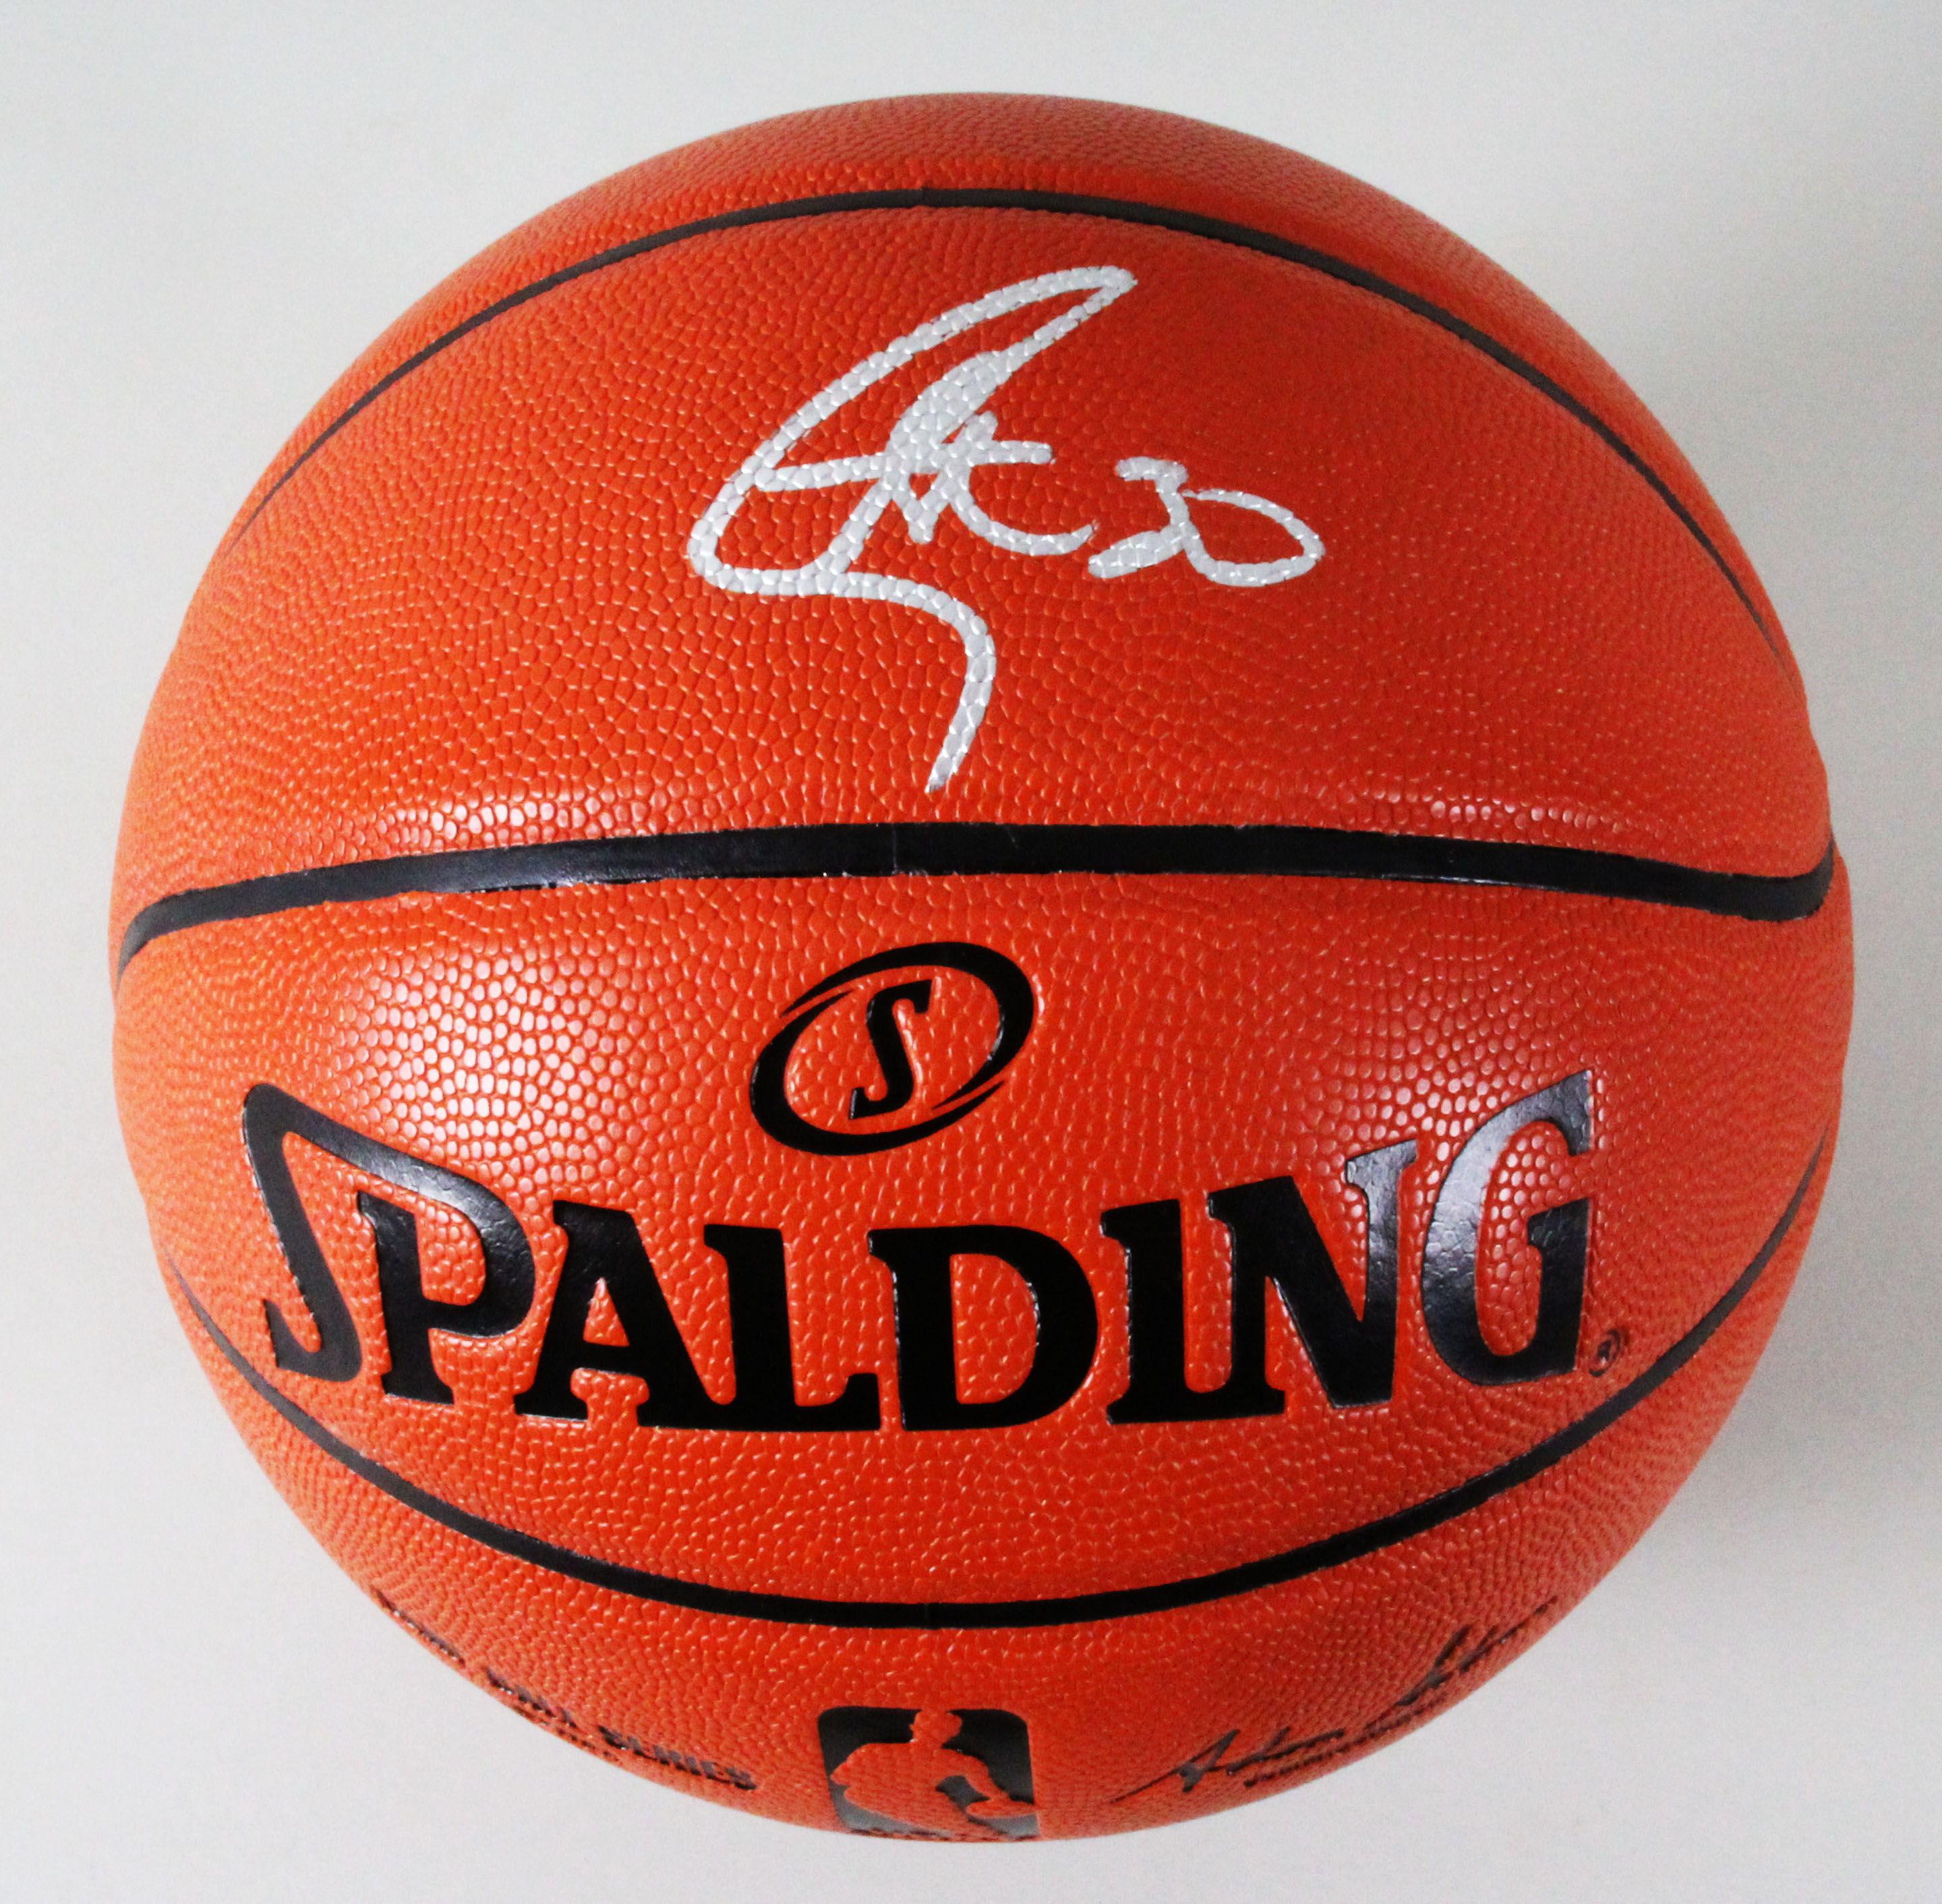 hot sale online 549c5 a3eec Stephen Curry Signed Basketball Warriors - COA Fanatics